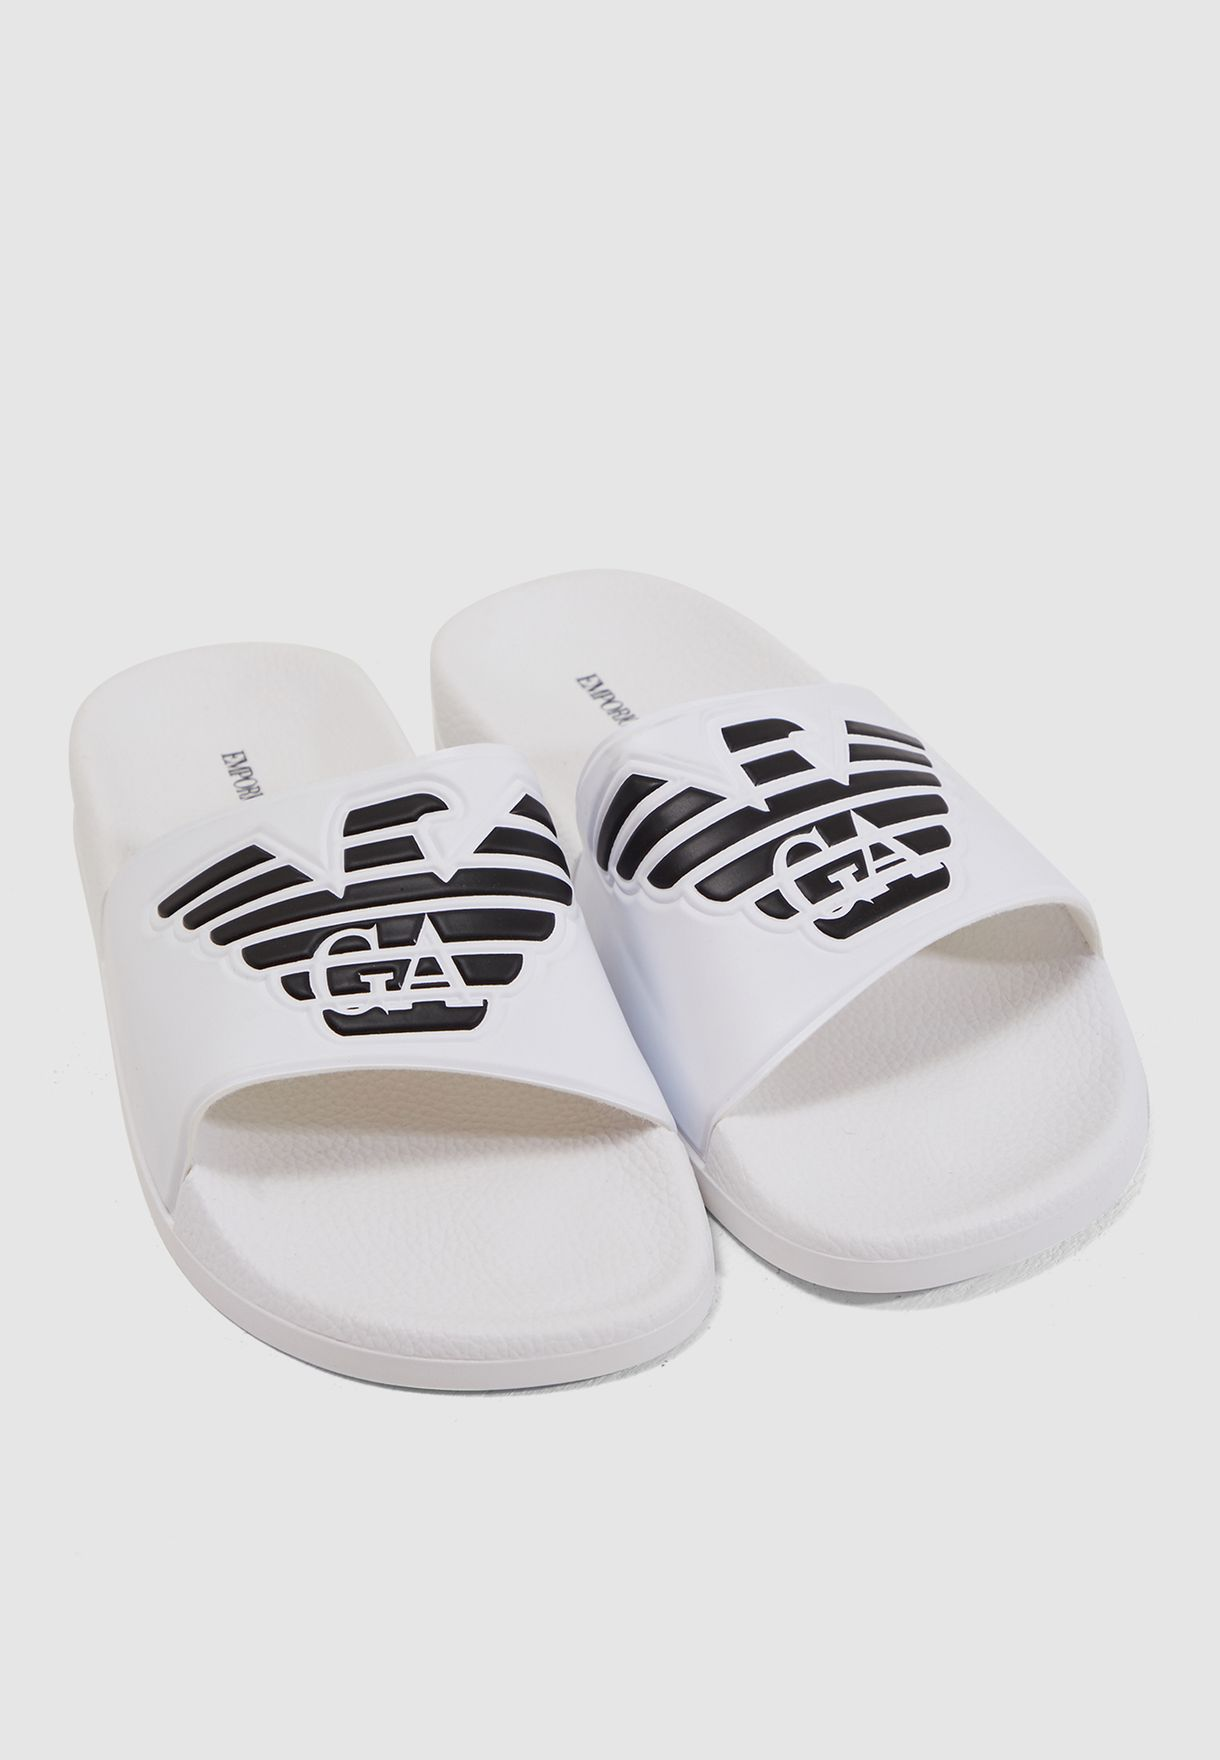 9842510ec8e756 Shop Emporio Armani white Casual Flip Flops X4PS01 XL828 00001 for ...